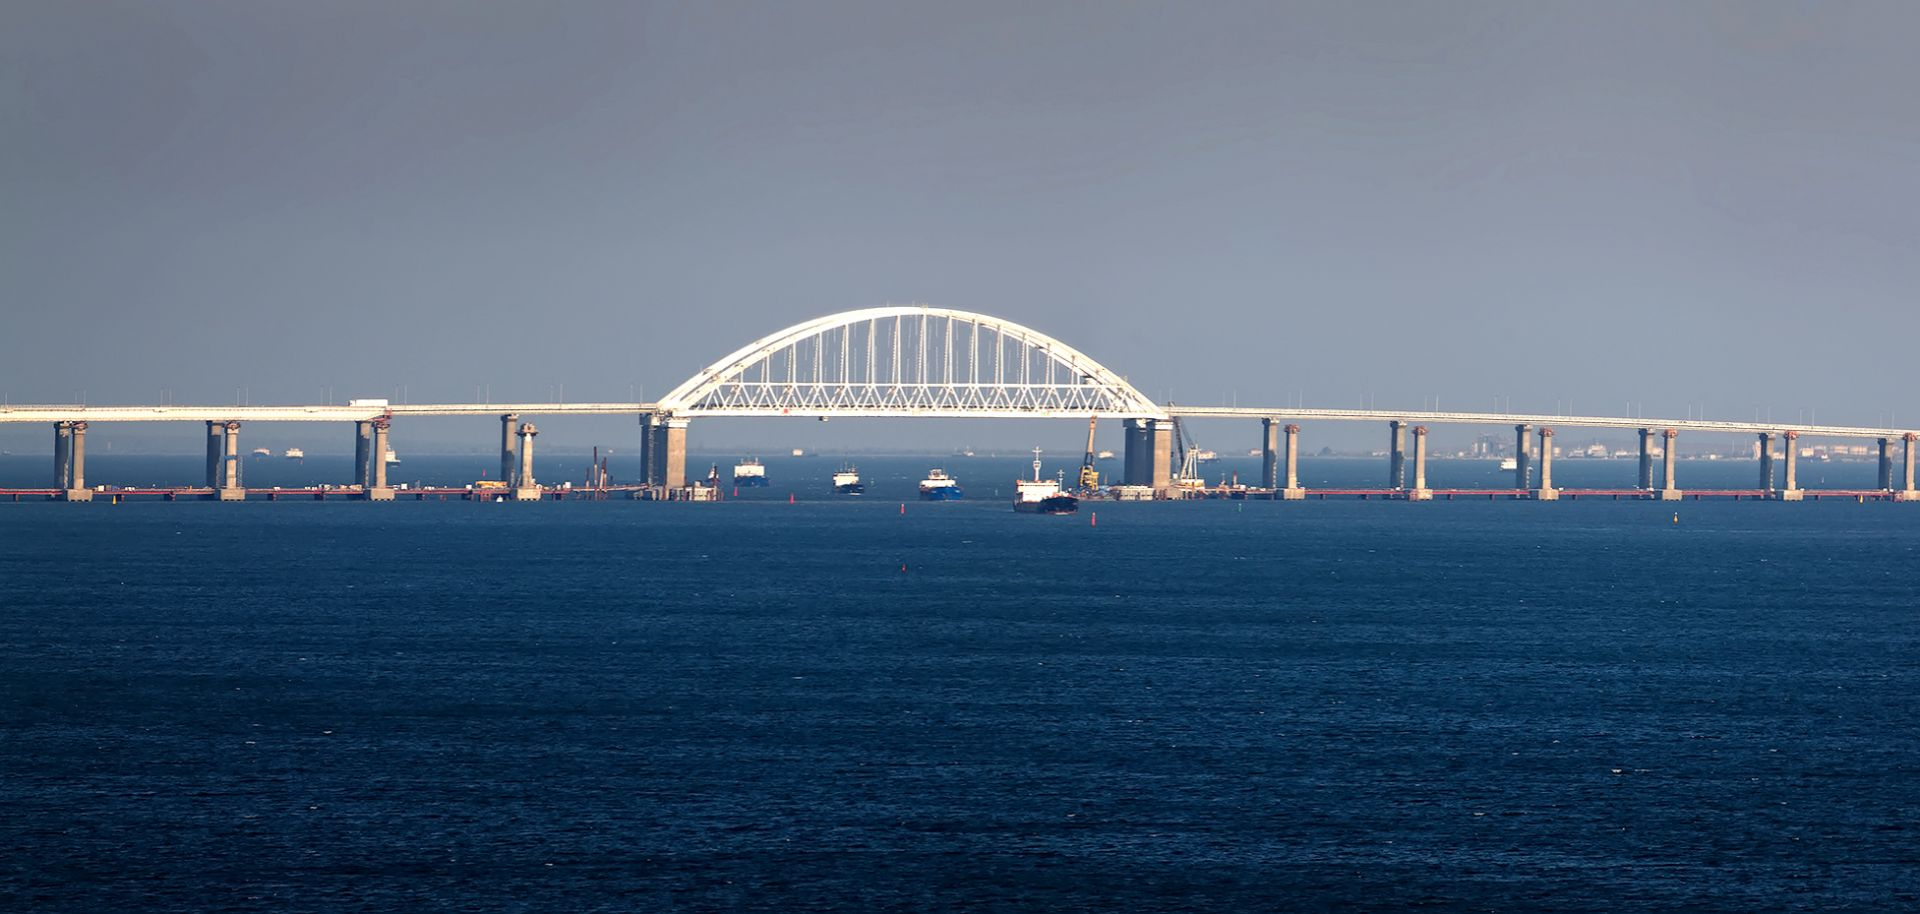 Cargo ships pass under a bridge over the Kerch Strait, which joins the Sea of Azov and the Black Sea.